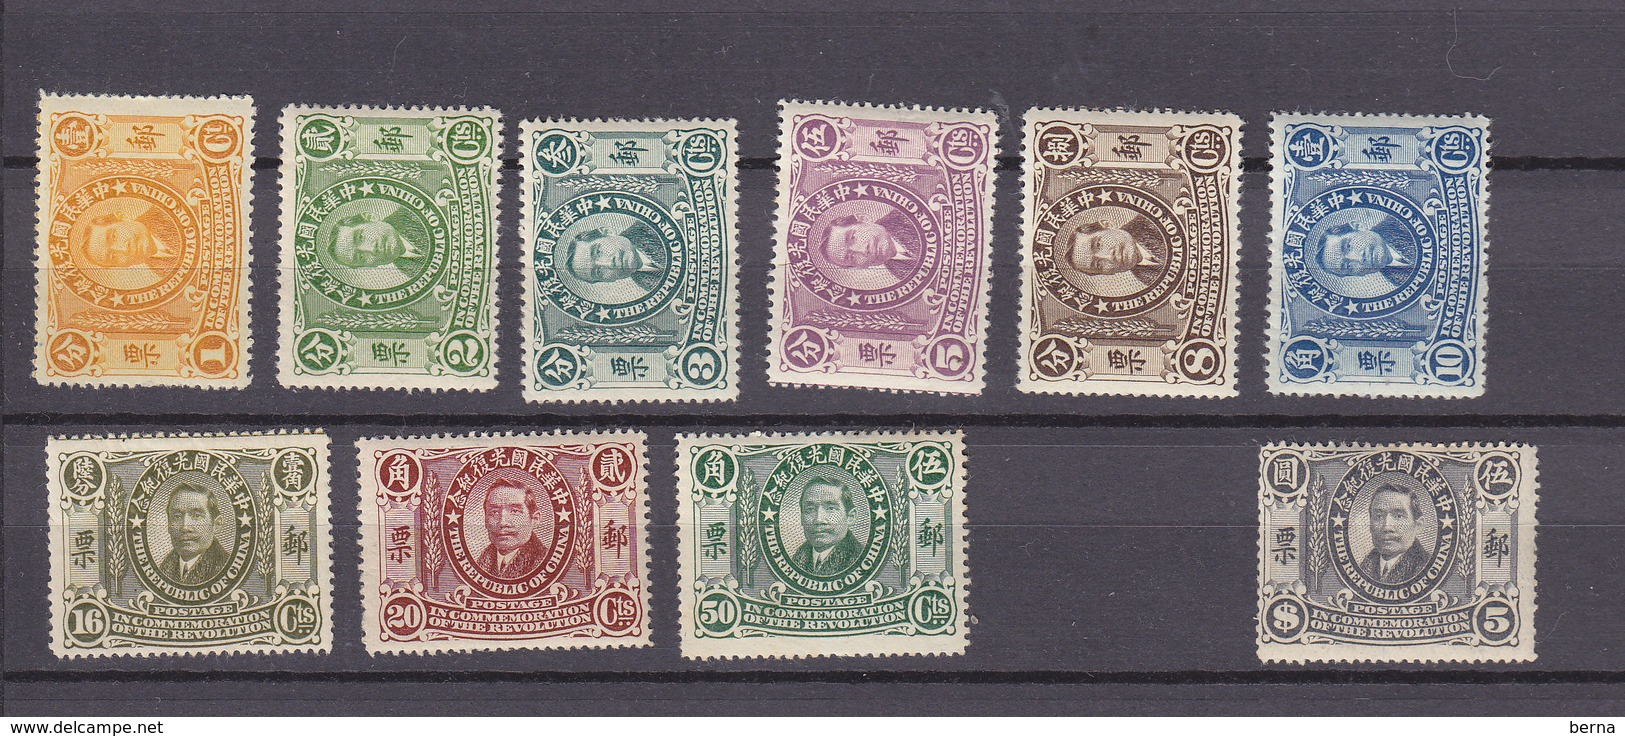 CHINA SG 242/253 EXCEPT 251 AND 252 SOME ARE TONED - Nuovi